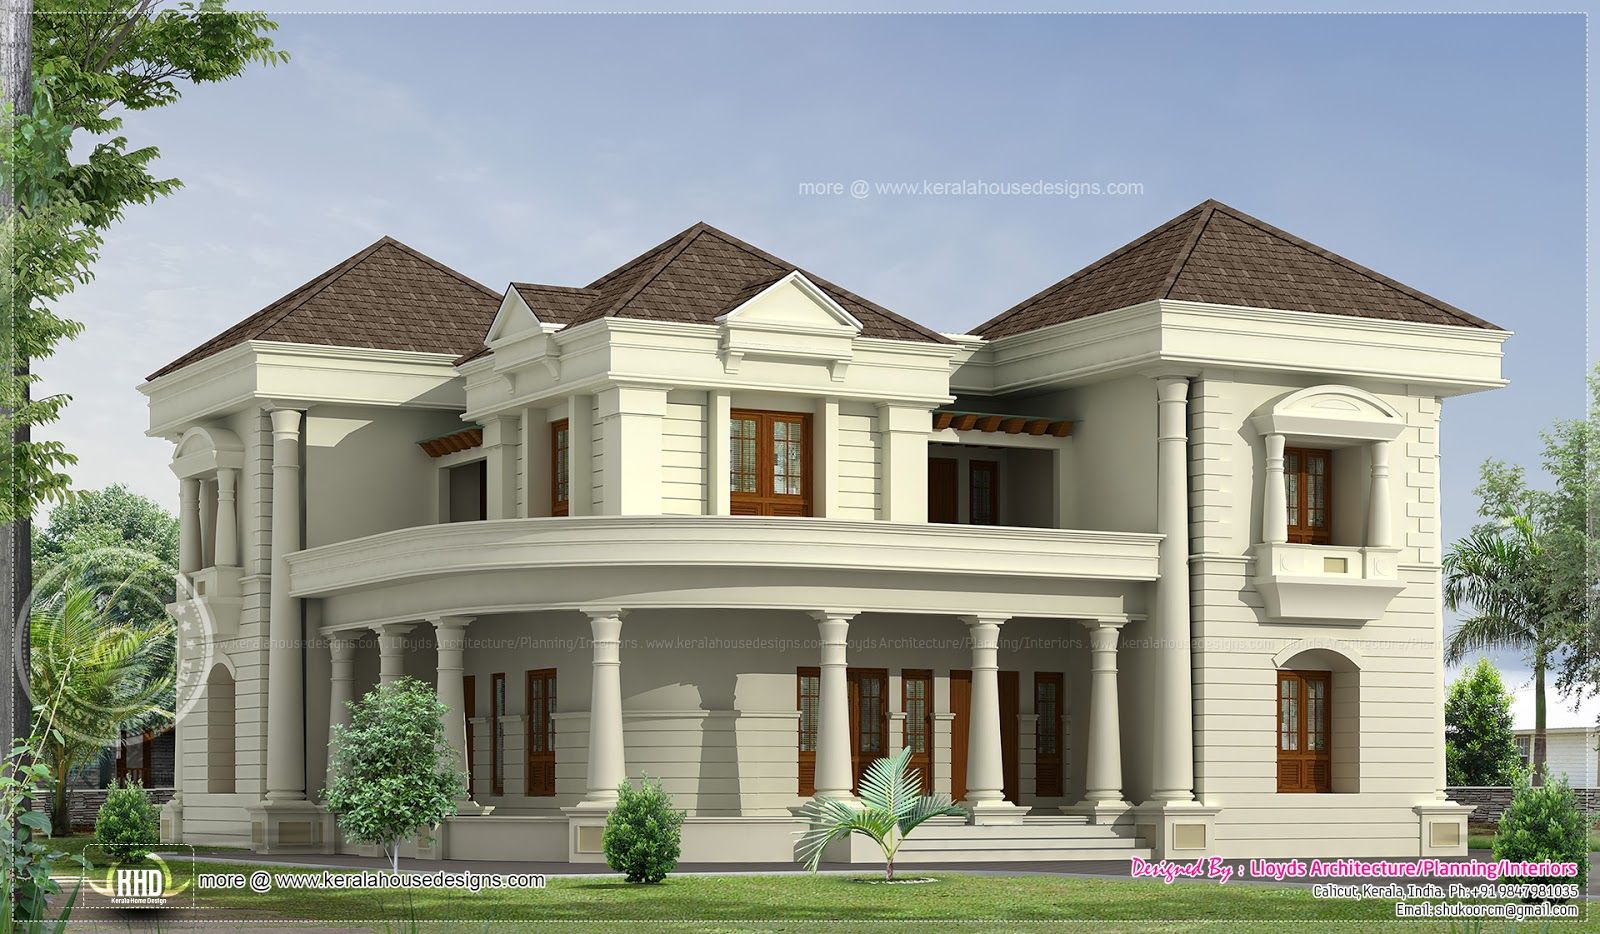 Modern bungalows bedroom luxurious bungalow floor plan for Modern small bungalow designs